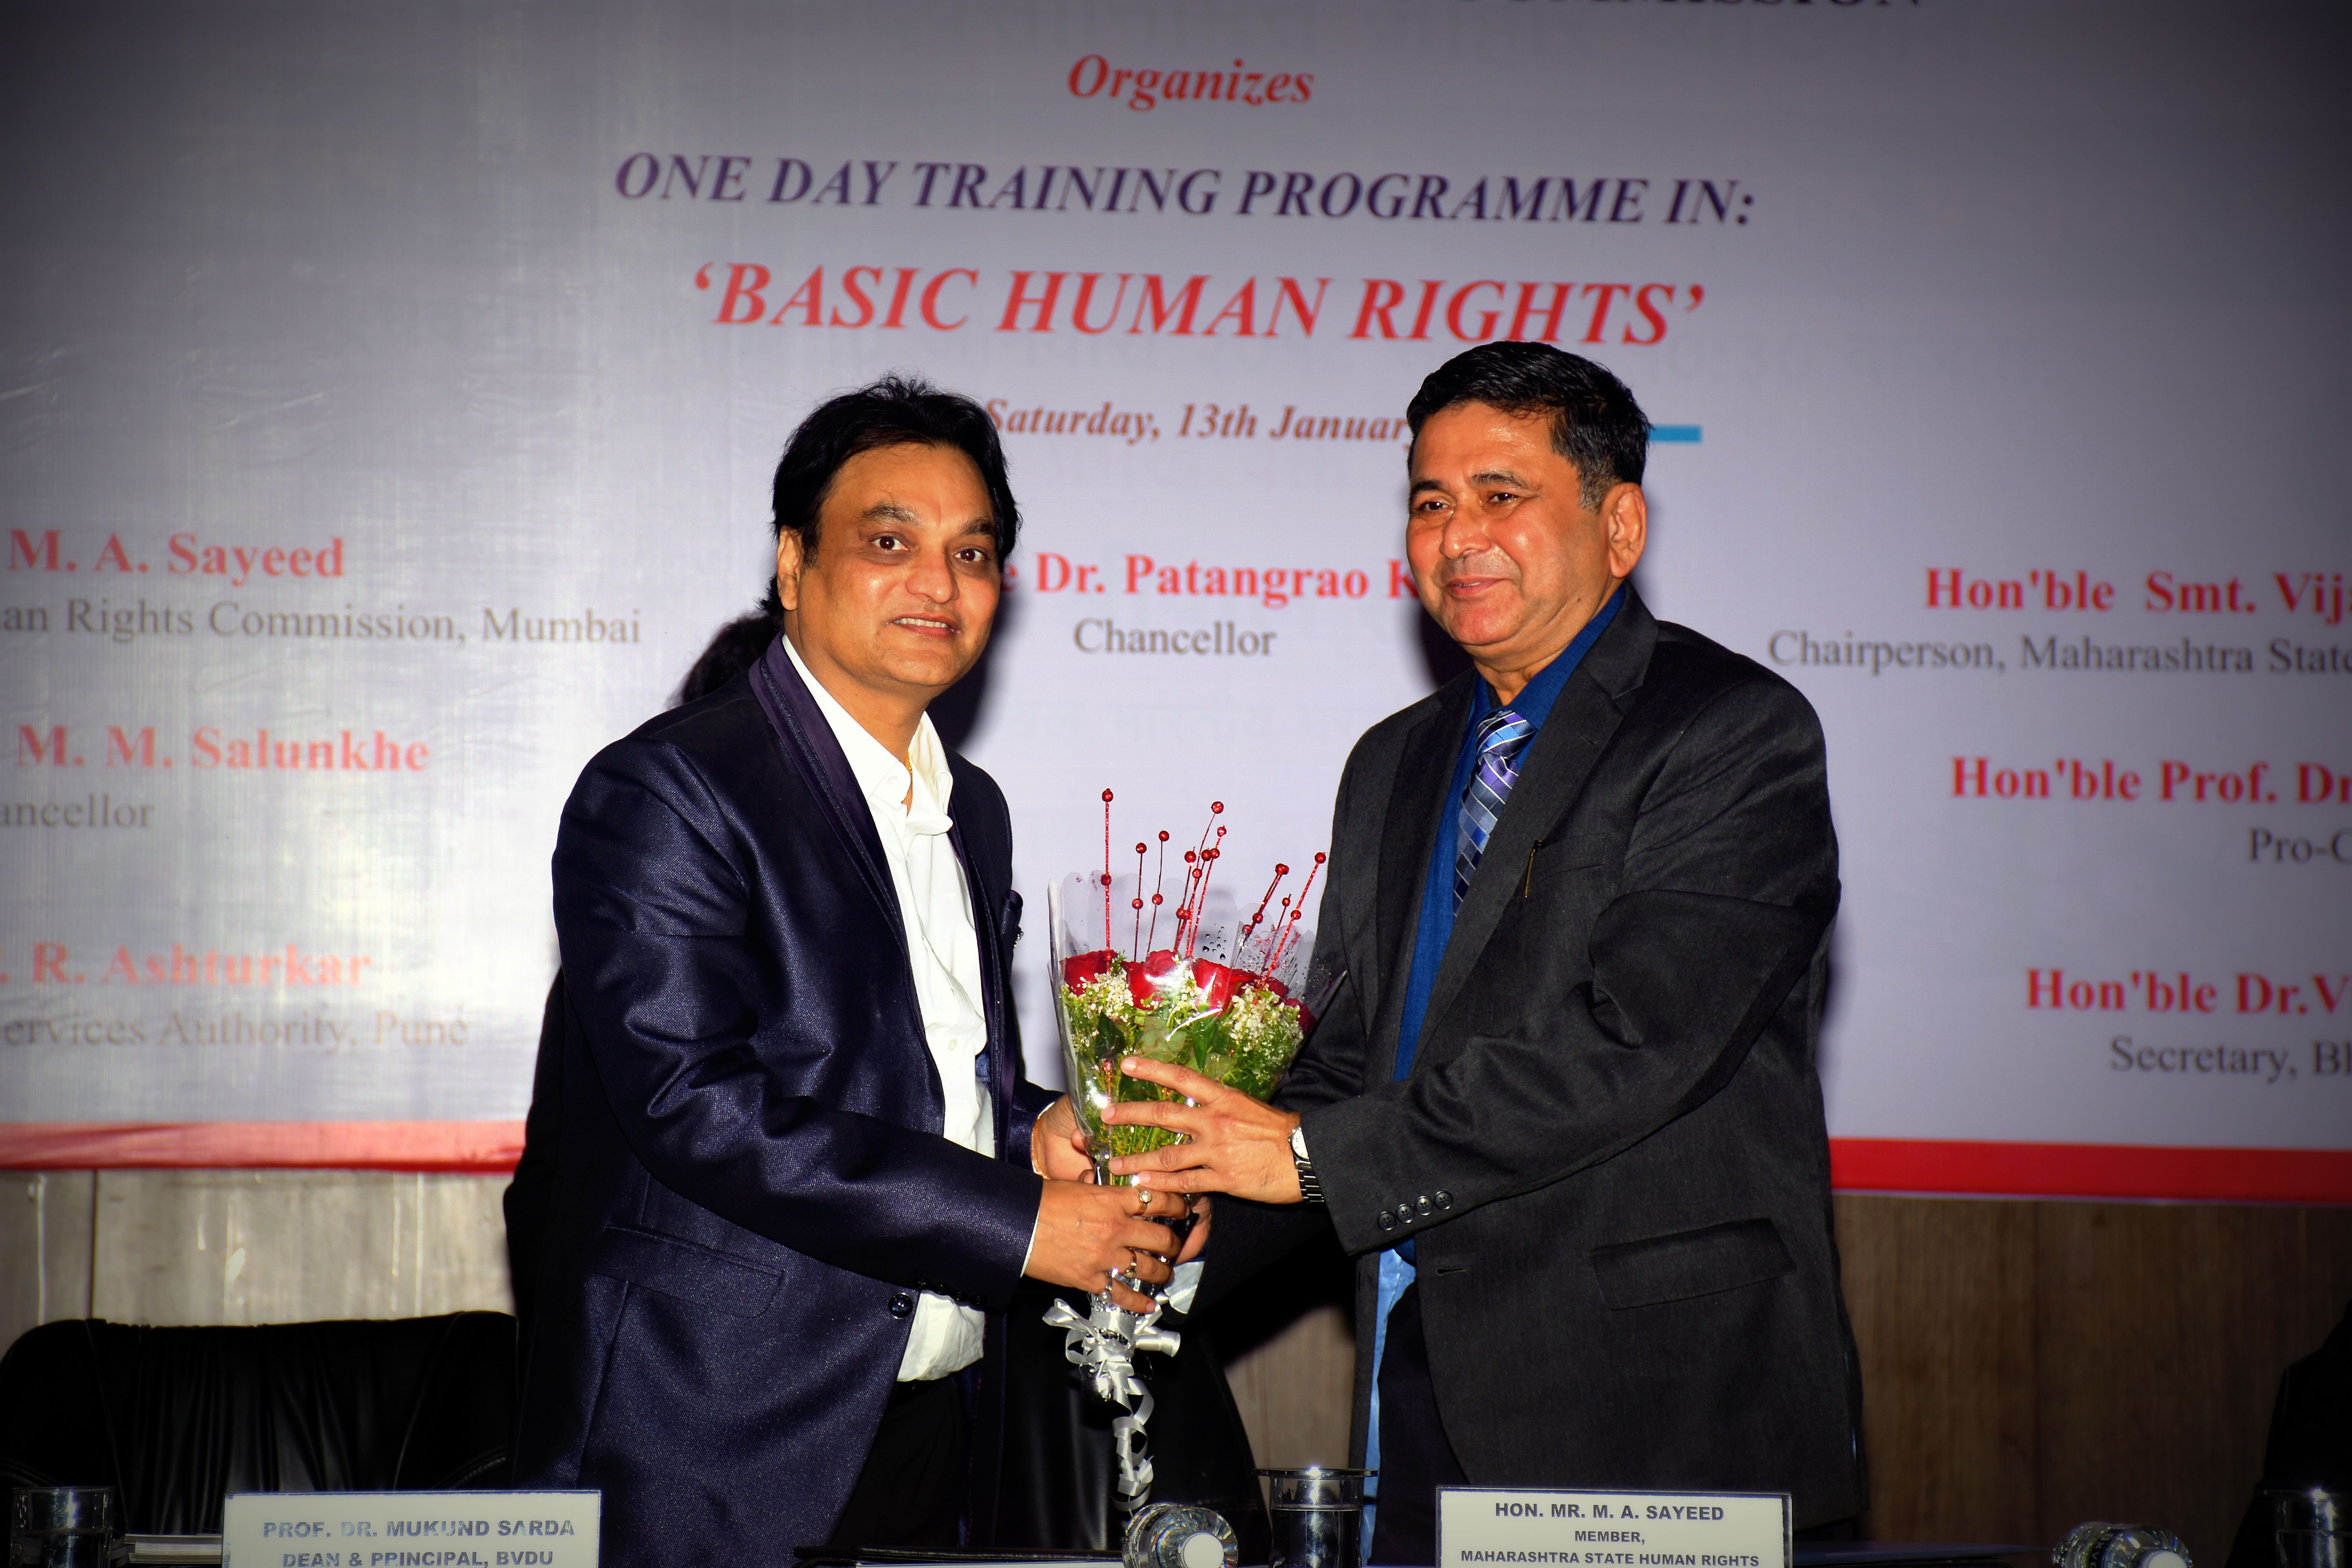 Hon Ble Mr M A Sayeed Member Maharashtra State Human Rights Commission Was At New Law College Pune To Inaugurate One Day Training Programme In Basic Human